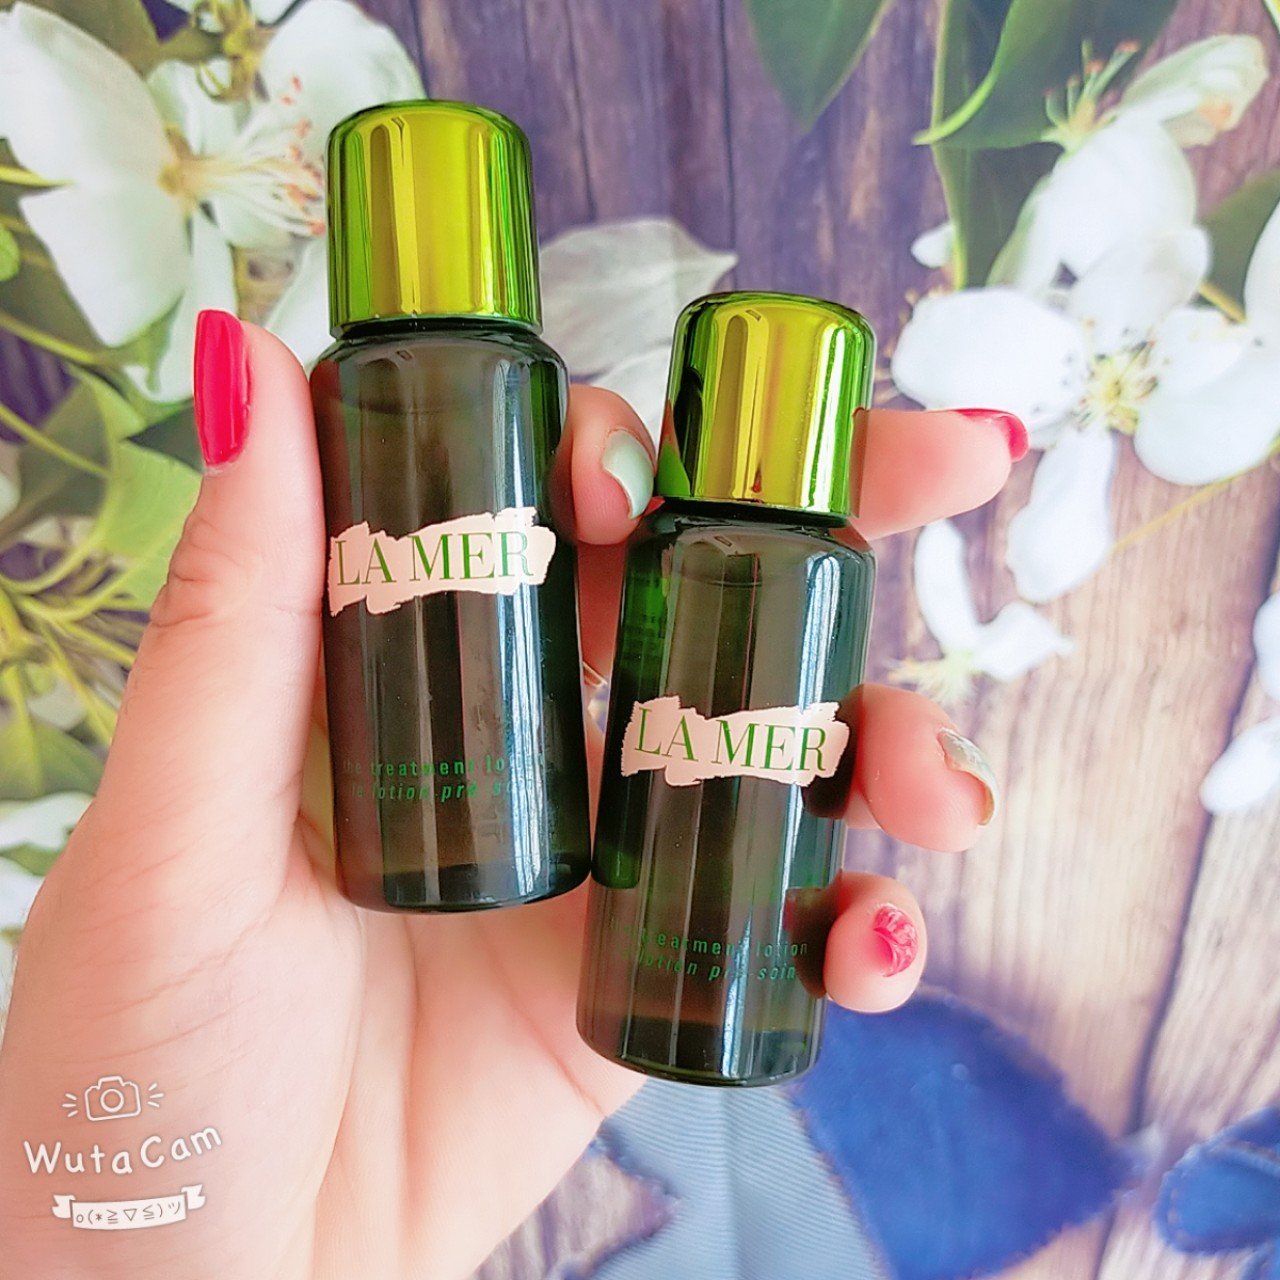 Lamer-the-Streatment-lotion-30ml-2